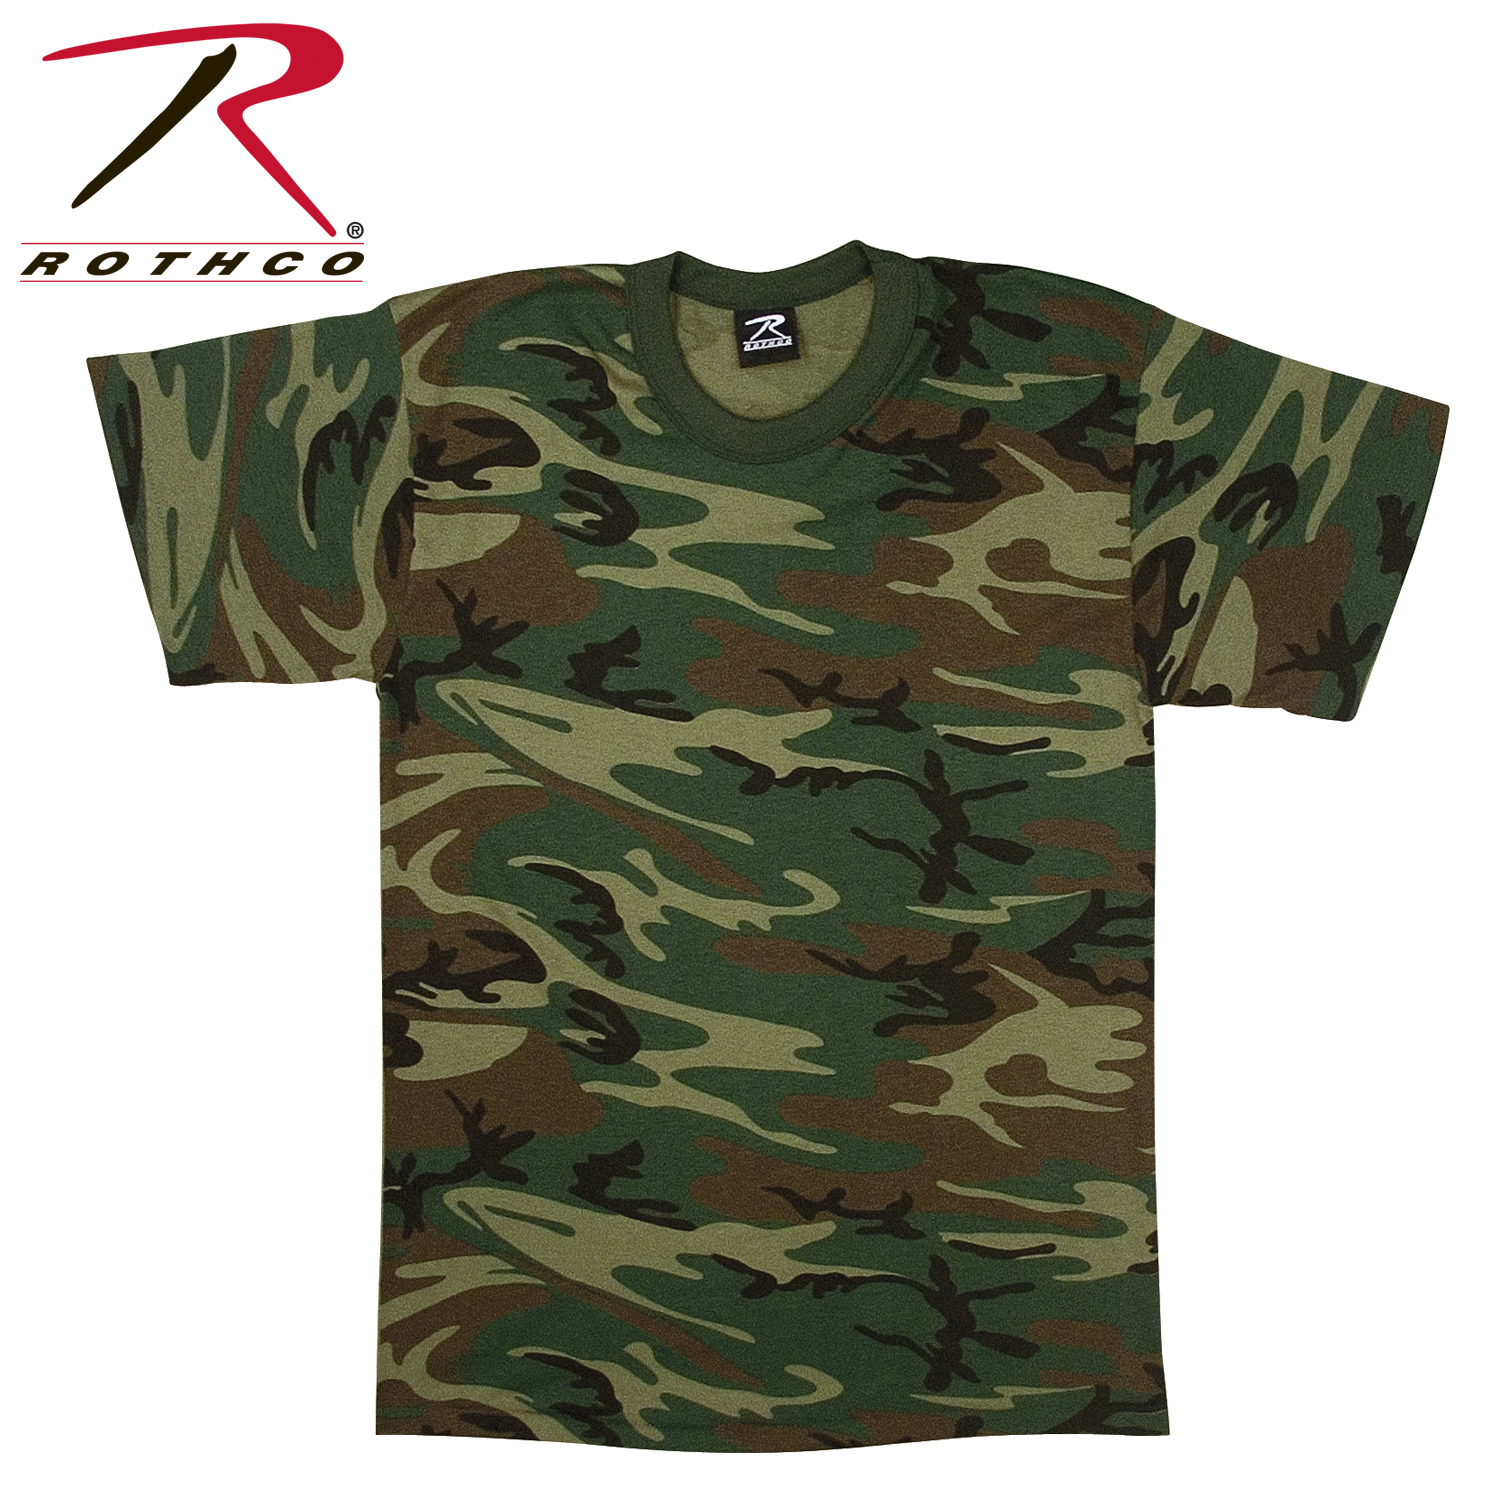 Rothco woodland camo u s made t shirt for Camouflage t shirt design